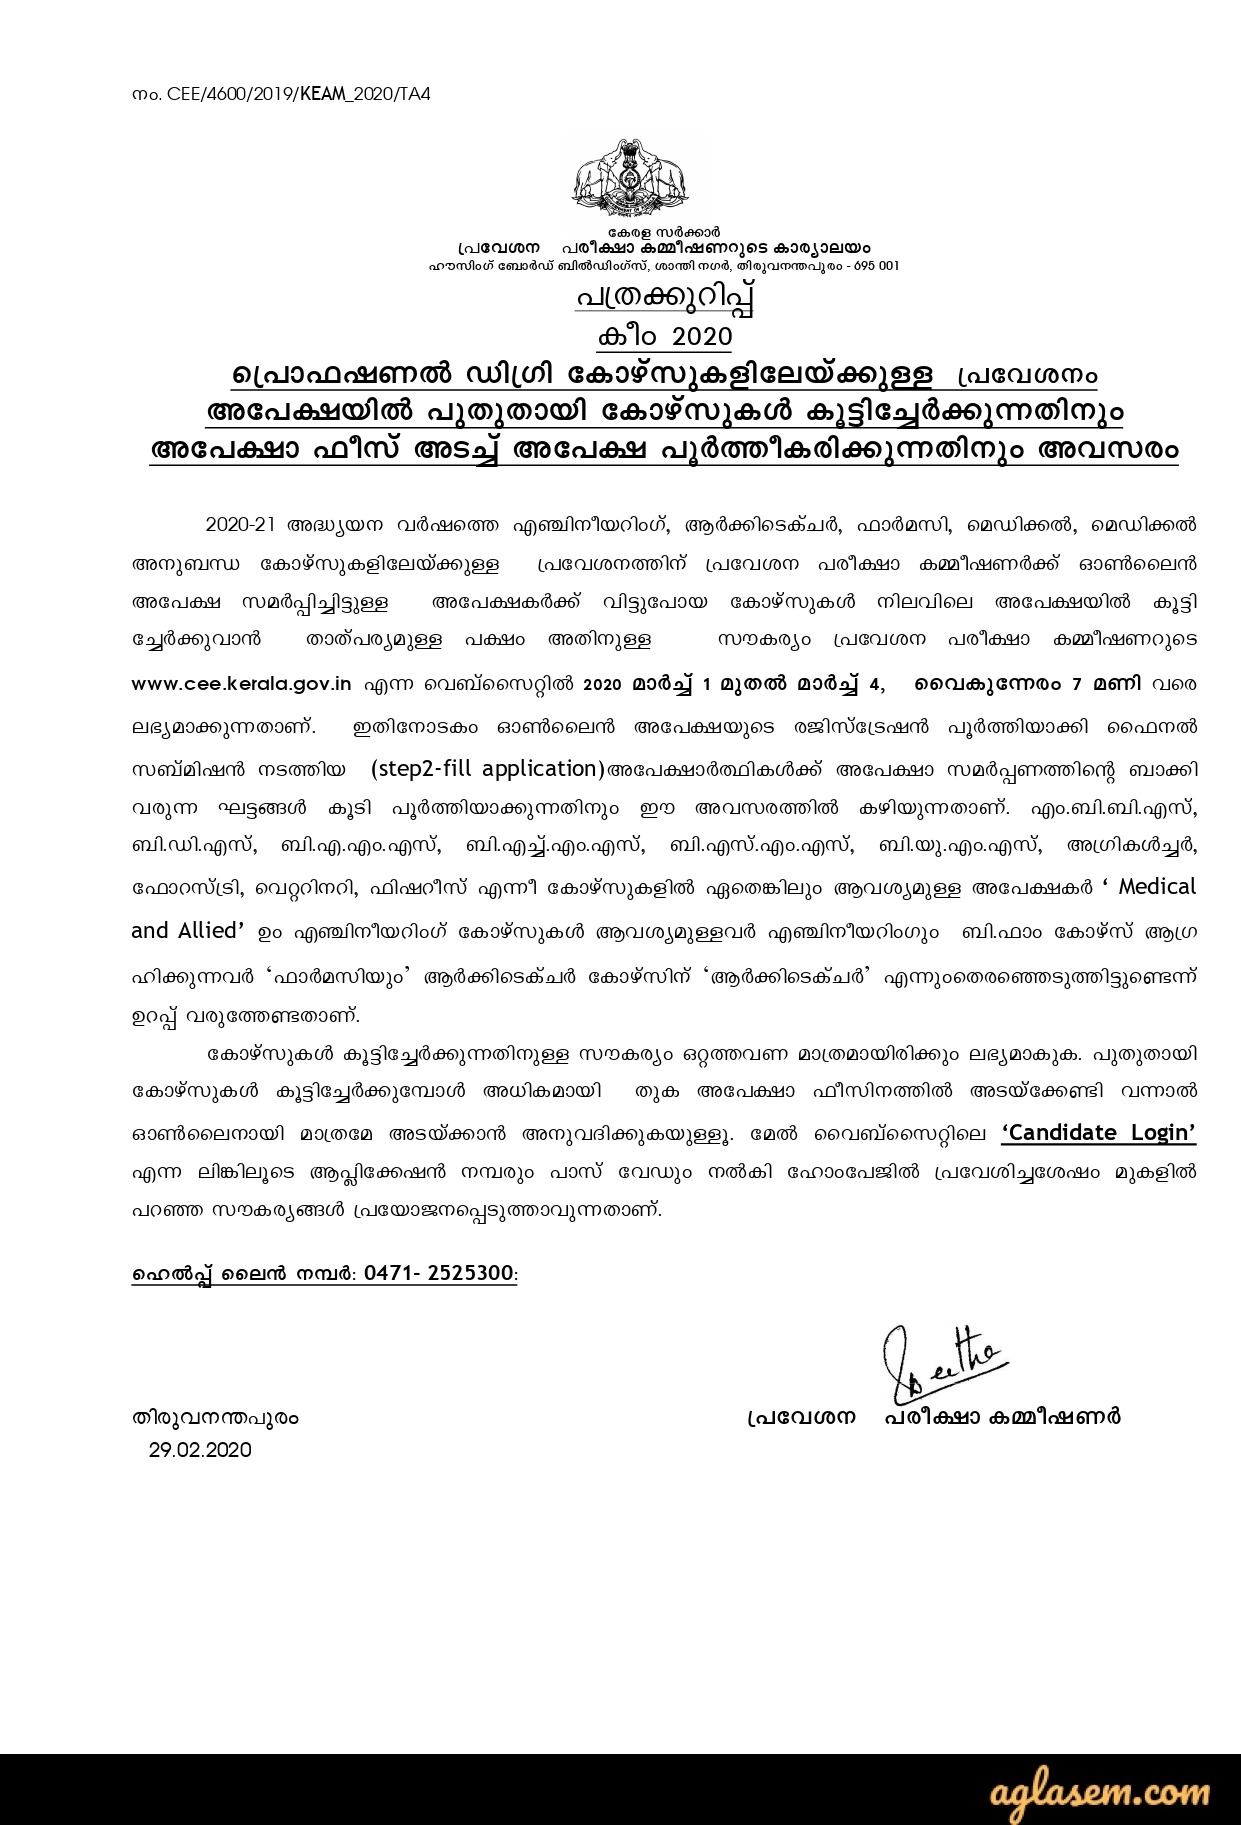 KEAM 2020 Application Form - Addition of Course Facility Upto 04 Mar